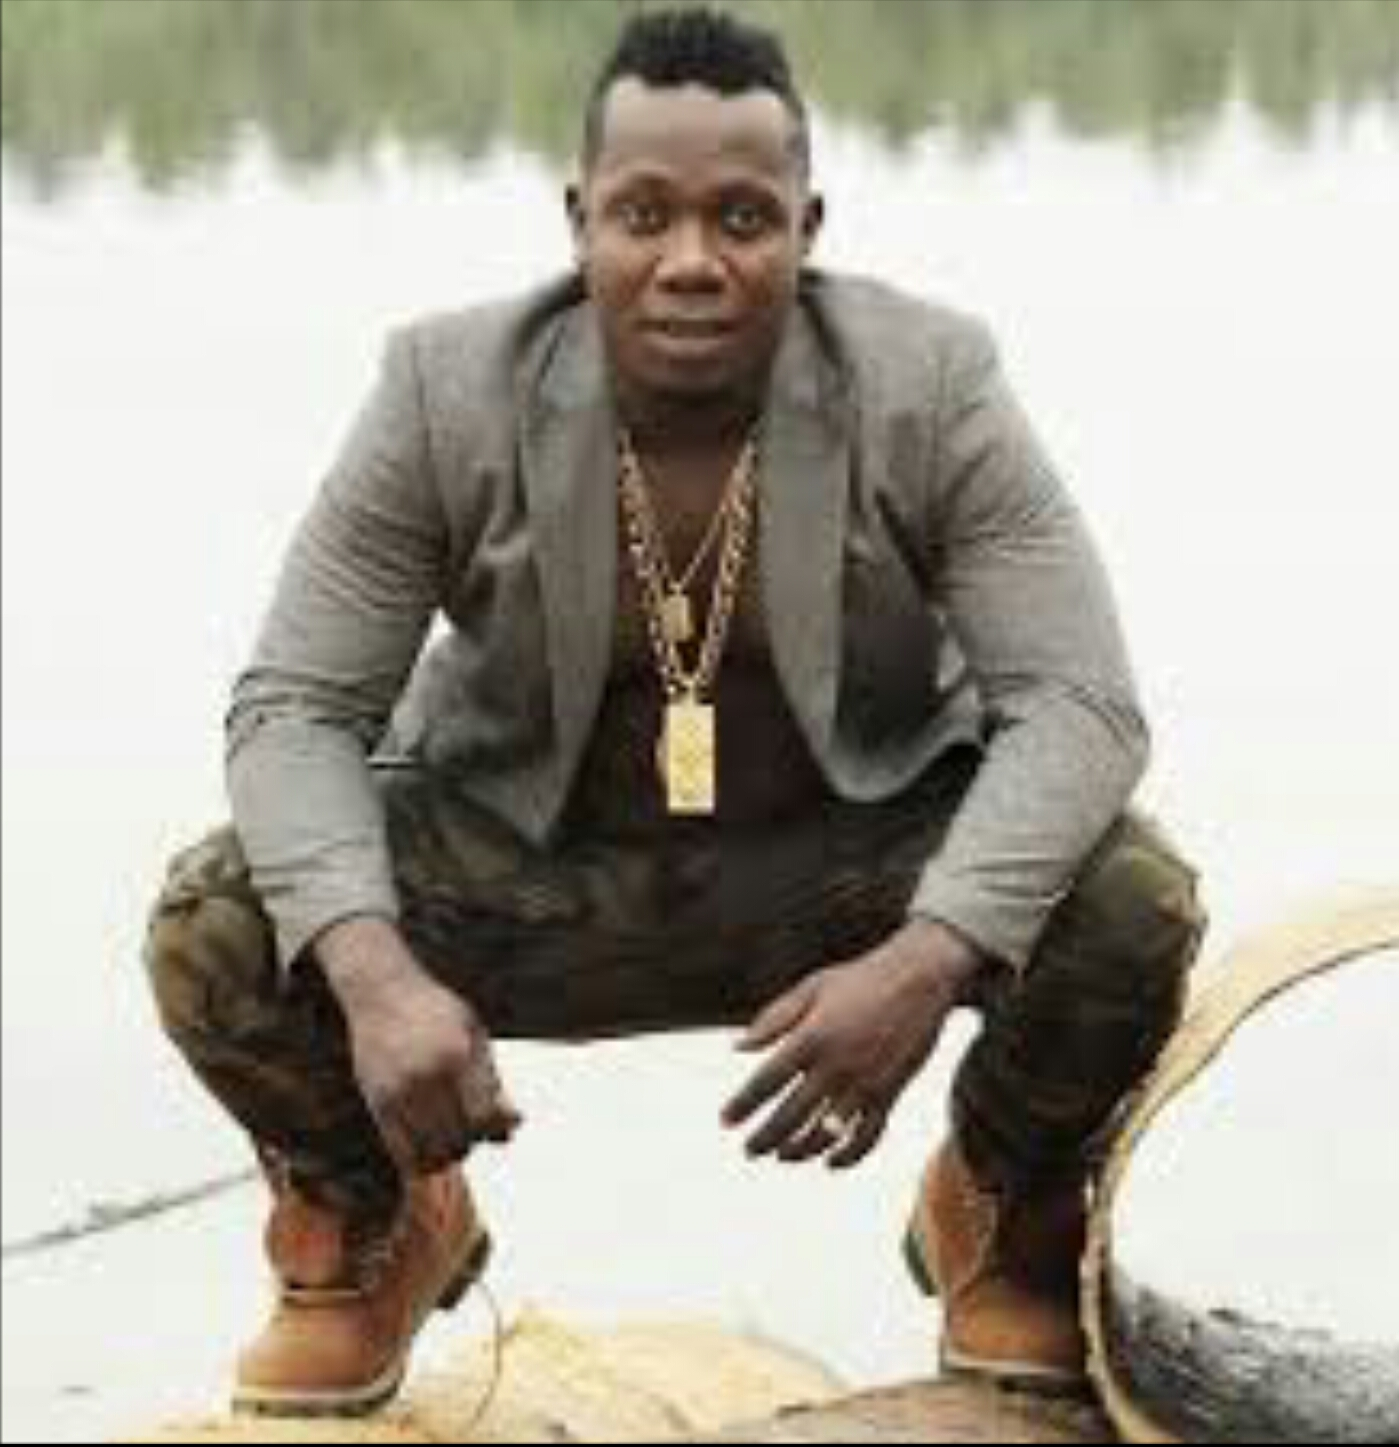 Duncan Mighty fires his South African manager and vows to shoot his South African tenant following the killing of his friend